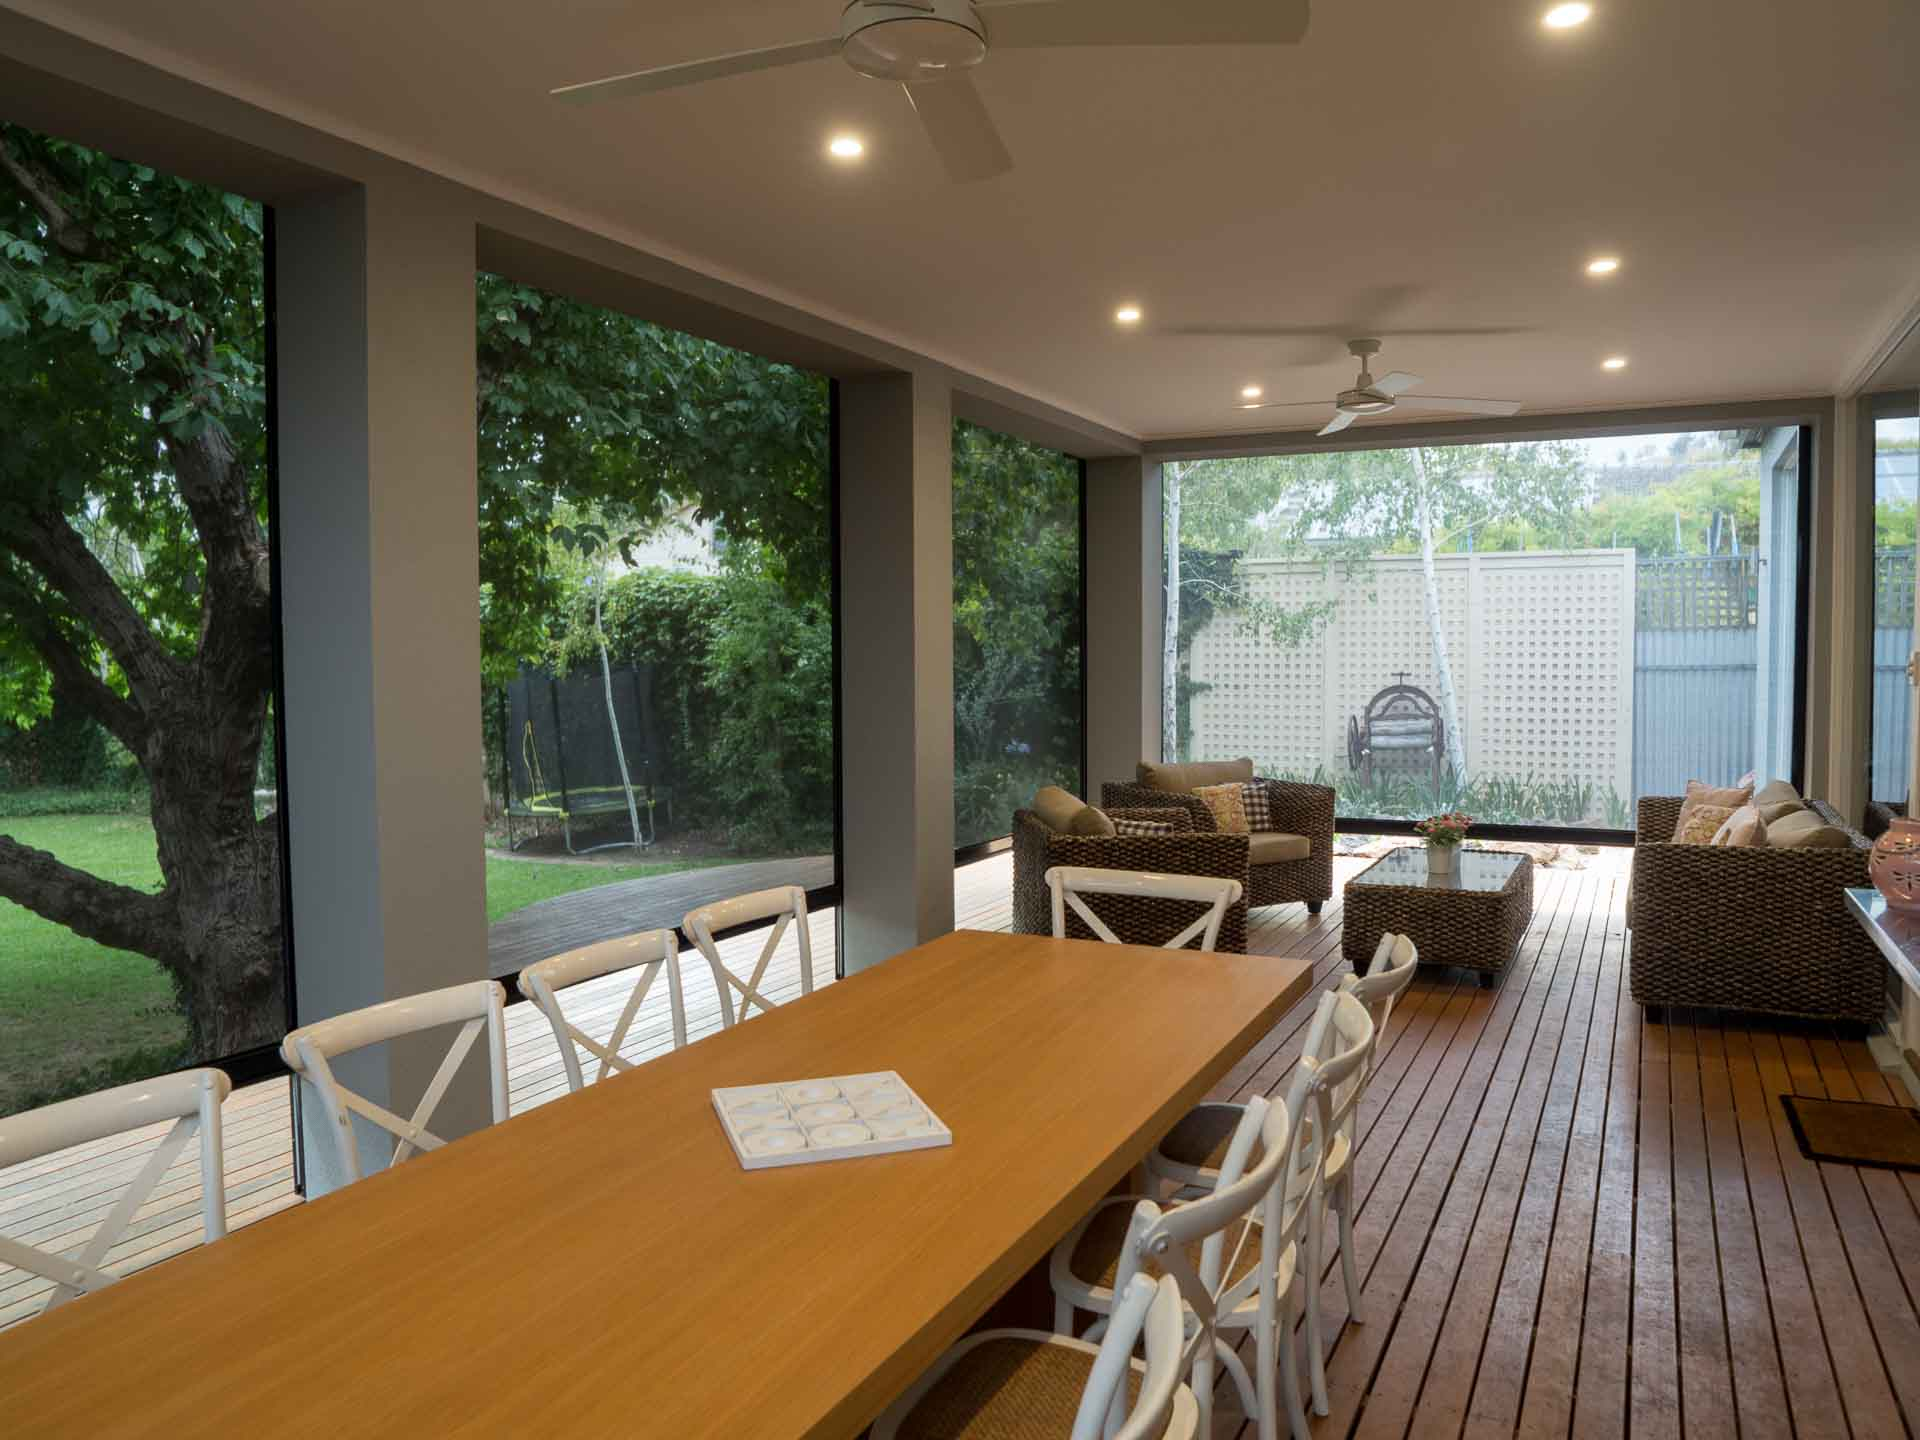 Outdoor Blinds Brisbane Outdoor Blinds Brisbane Free Measure And Quote For